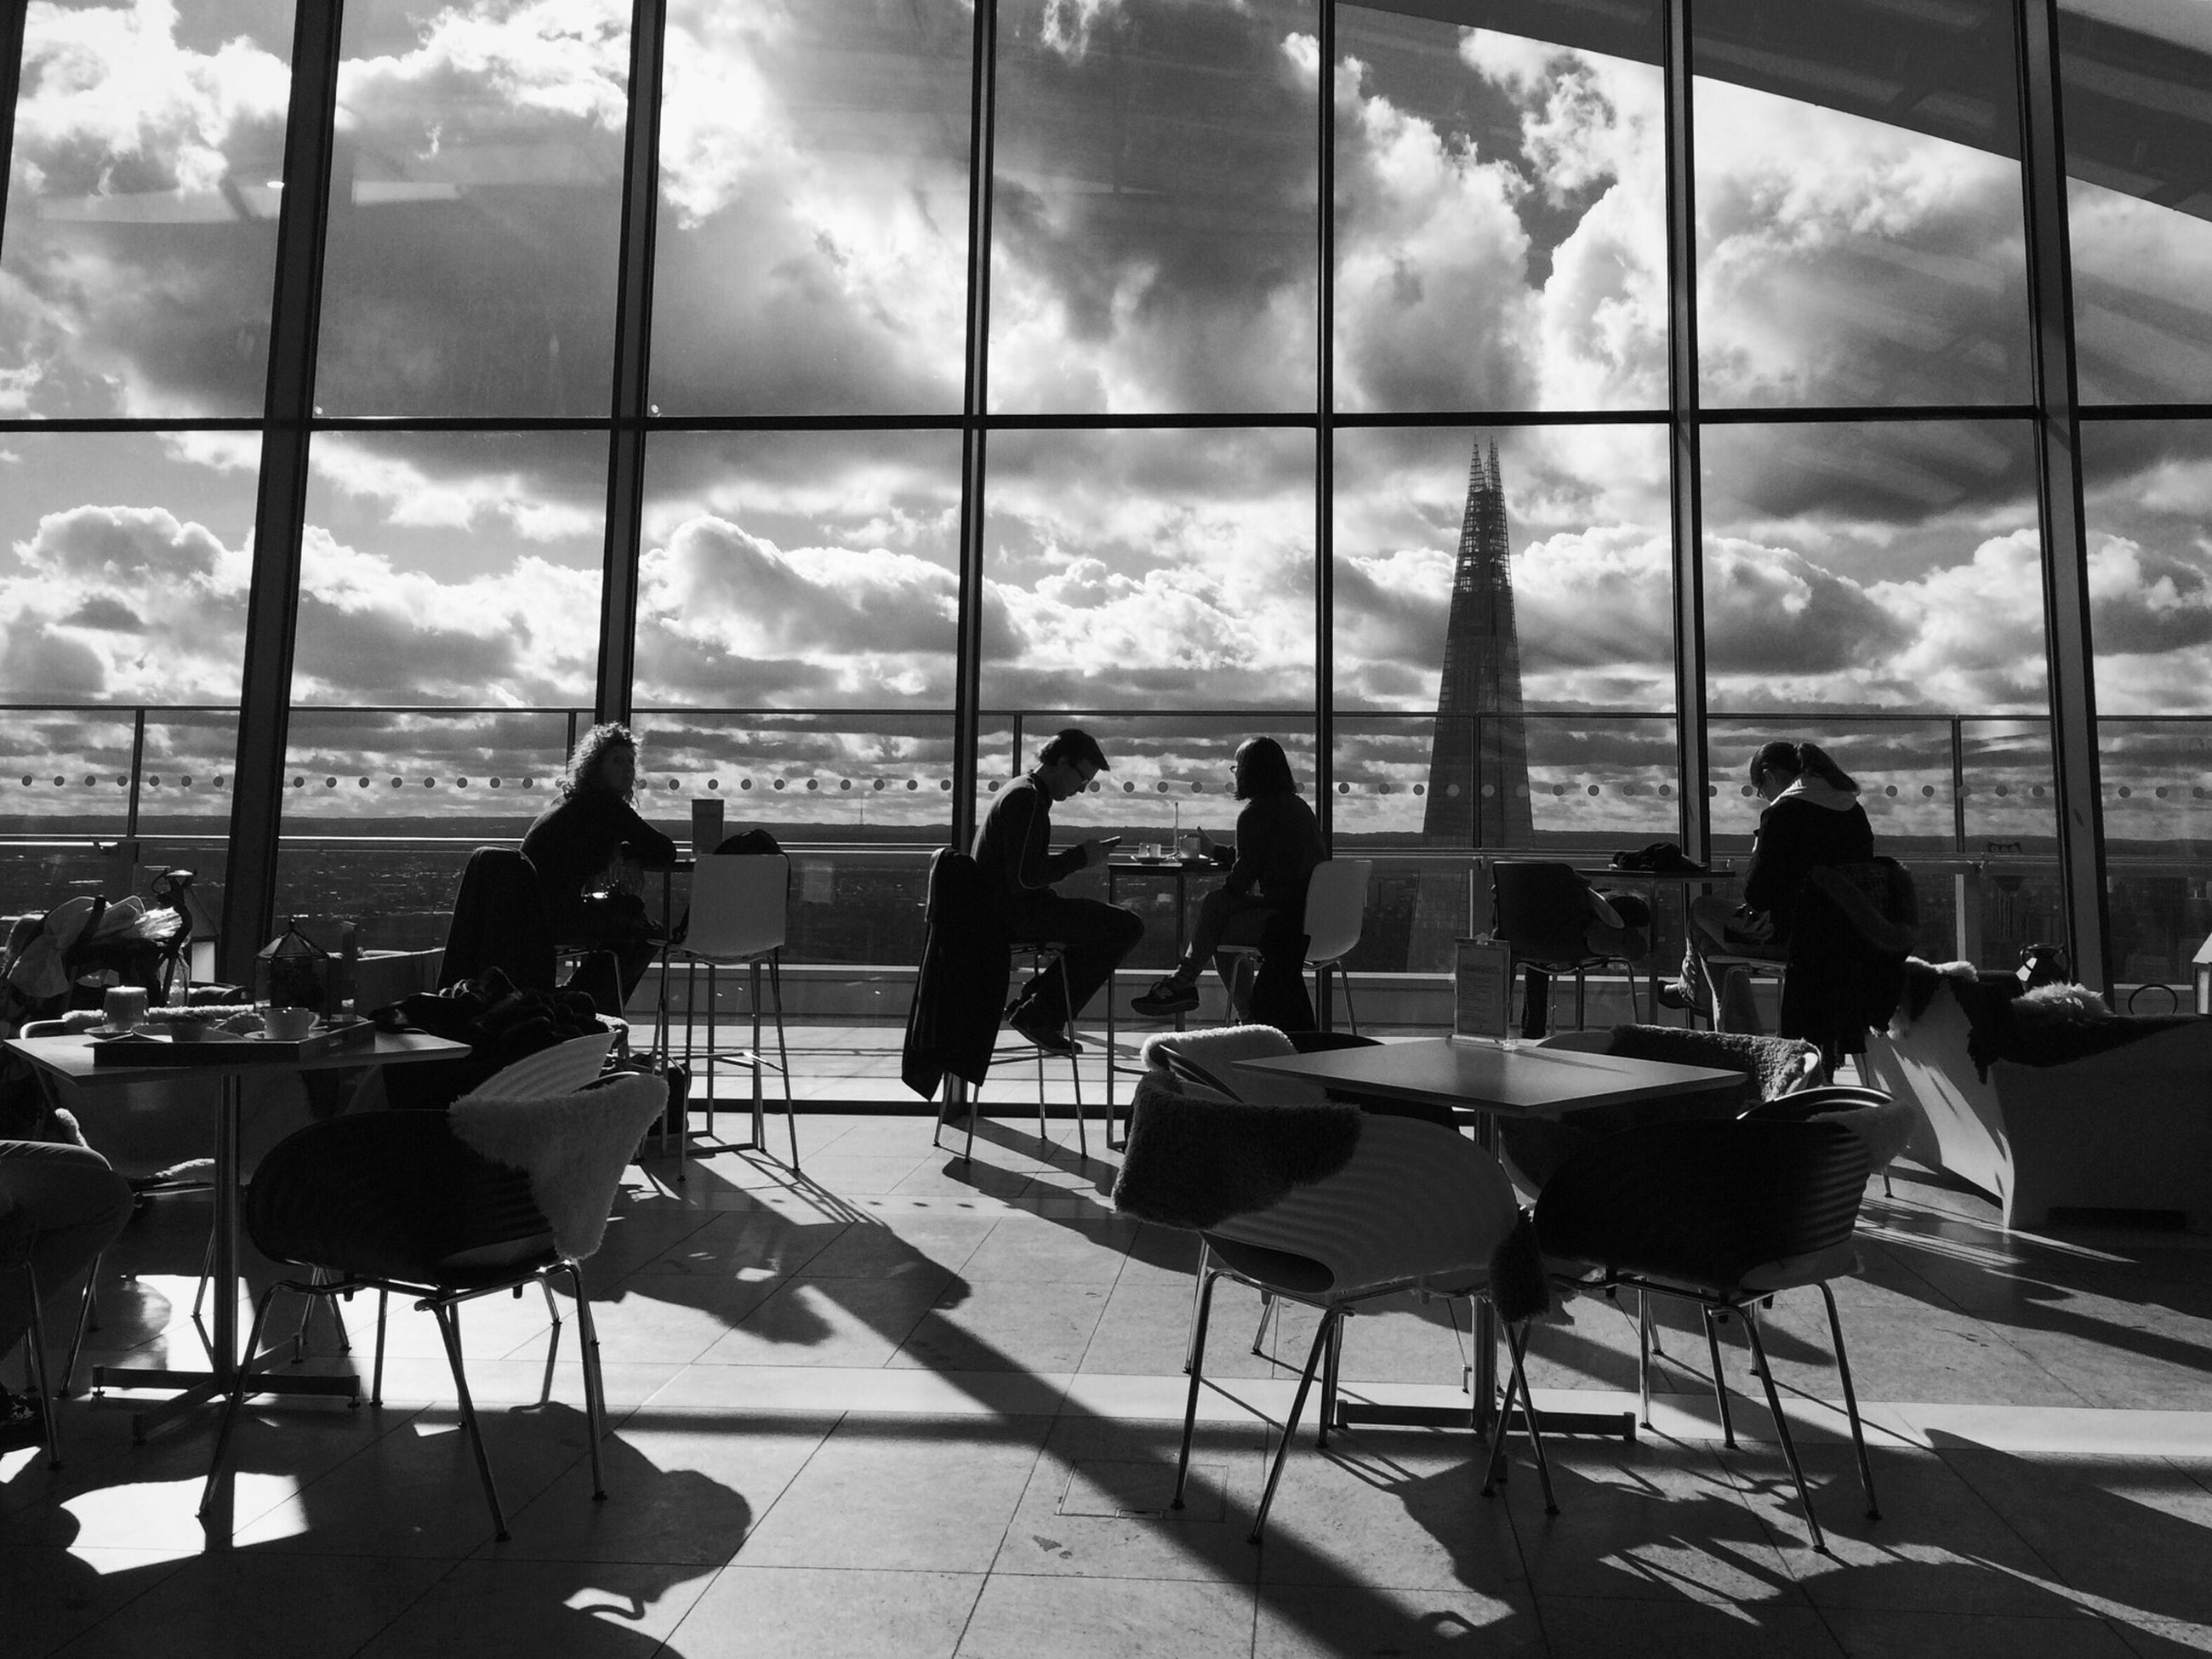 indoors, chair, table, sitting, window, restaurant, glass - material, sky, men, empty, relaxation, transparent, person, cloud - sky, seat, airport, lifestyles, day, silhouette